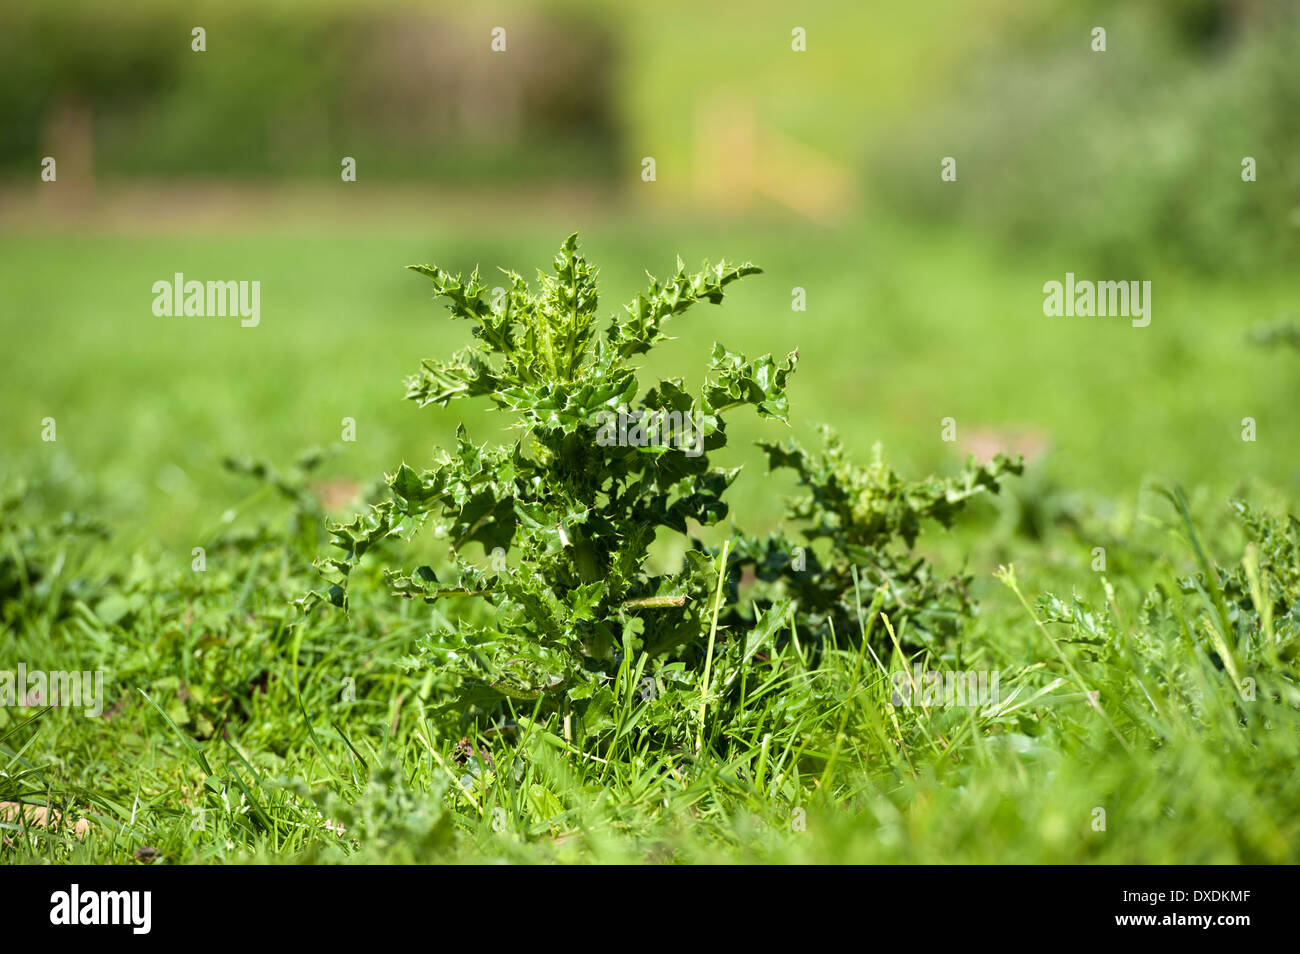 Creeping thistle, Cirsium arvense, in pasture. Scotland. - Stock Image